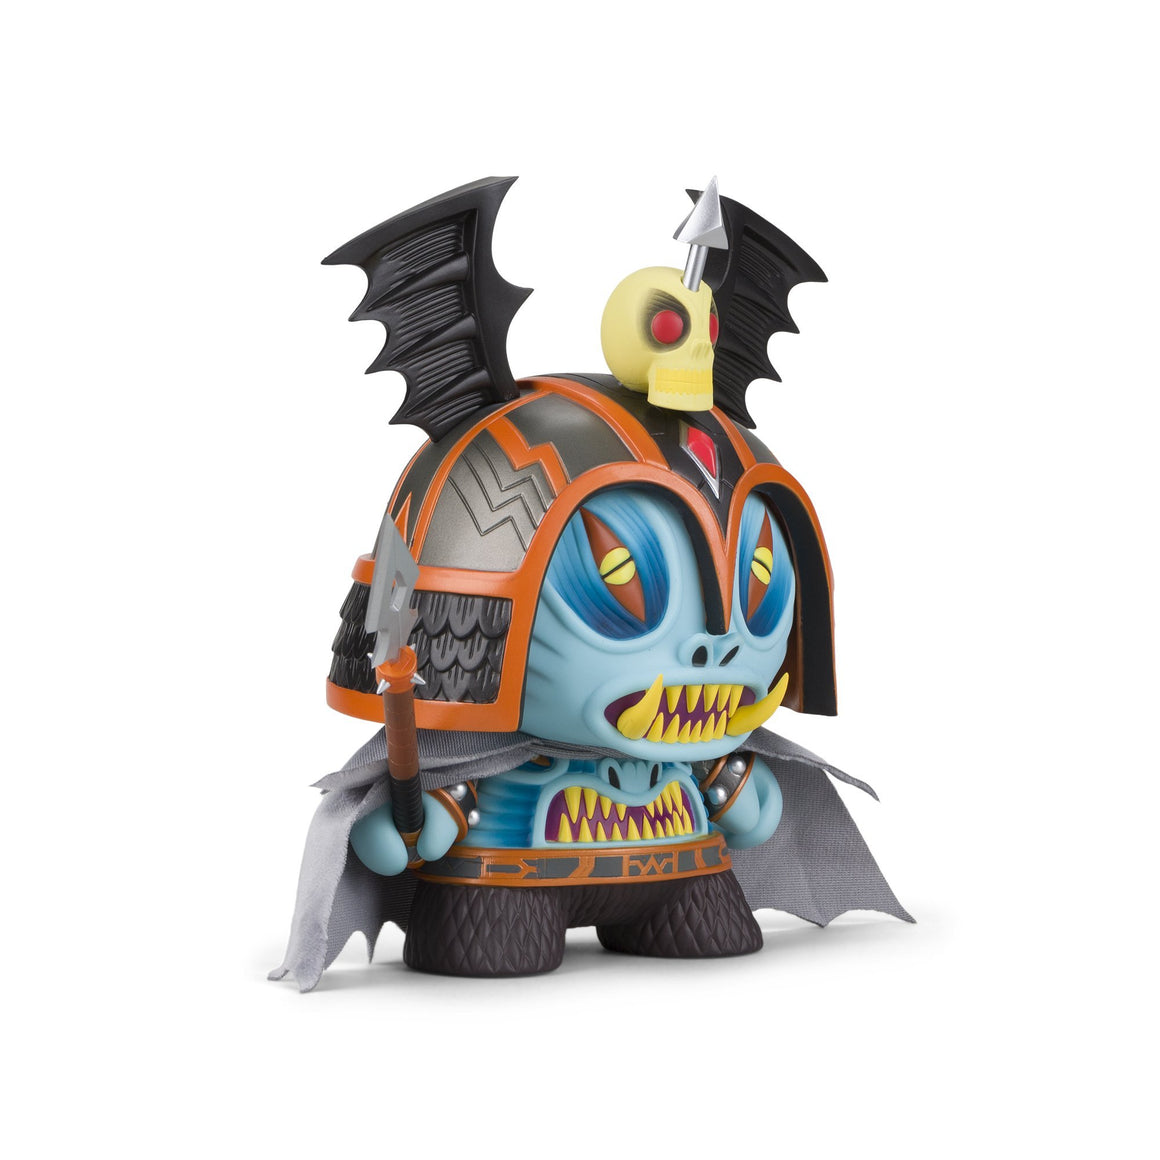 *Special Order* Harbinger Blue Edition 8-Inch Dunny Toy Figure by Martin by Ontiveros